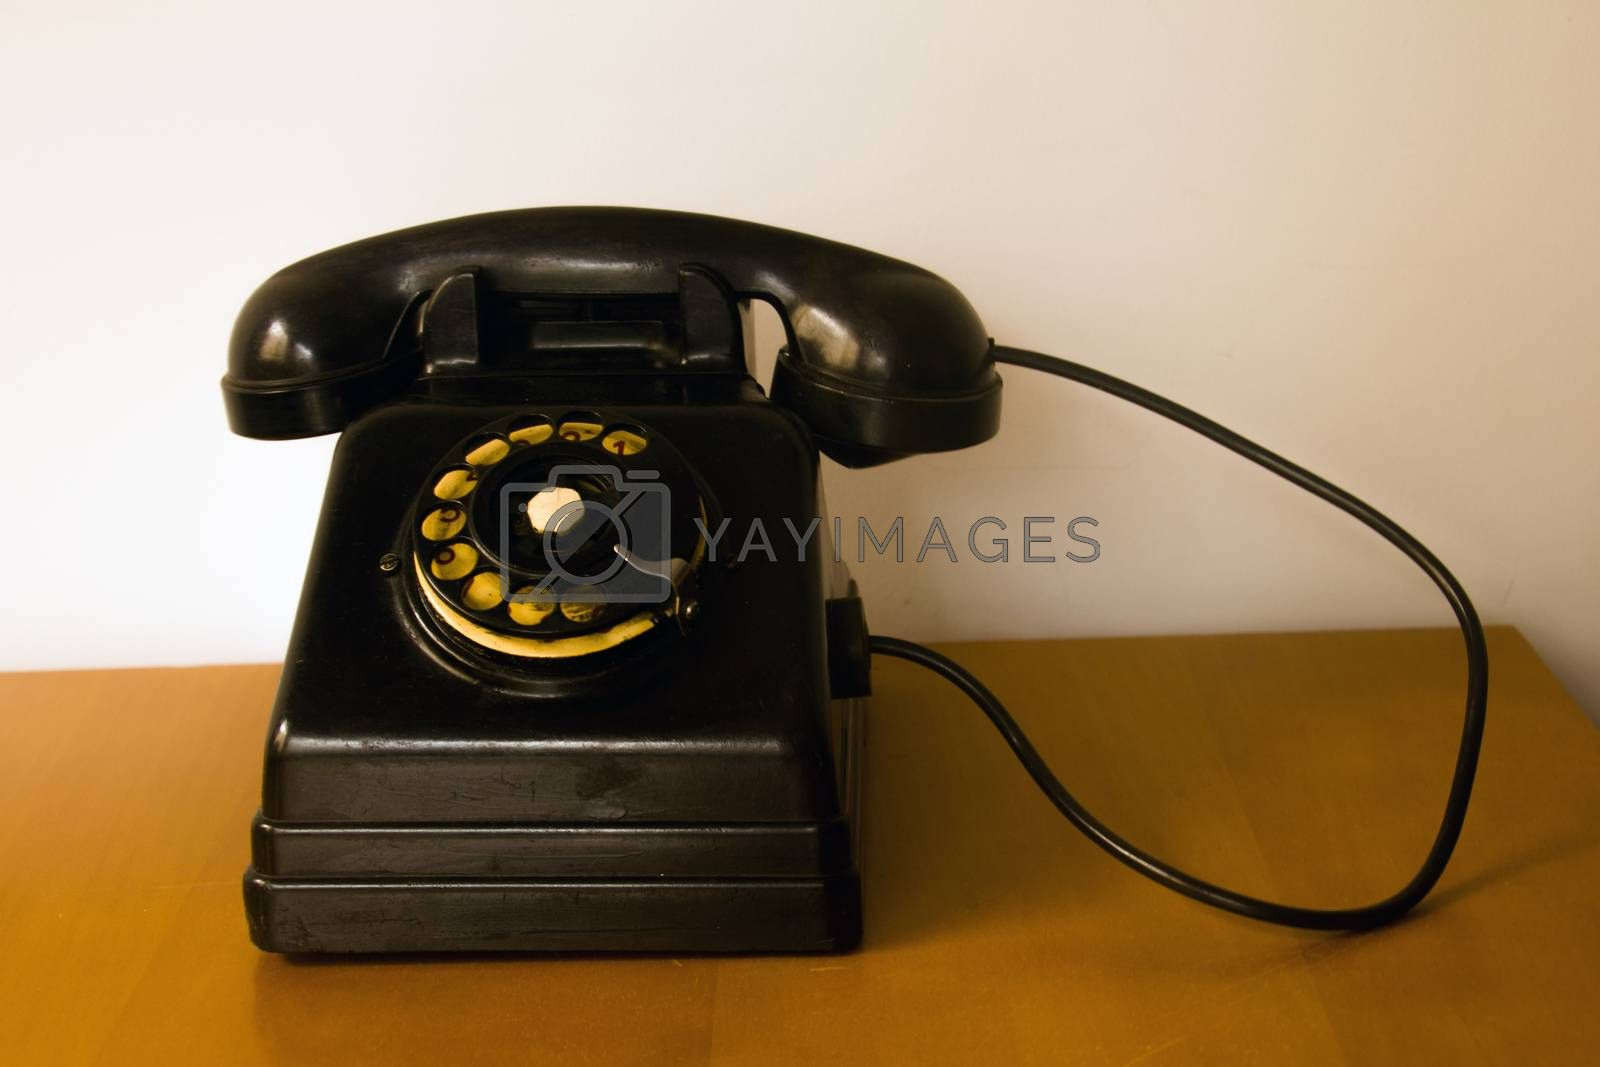 old telephone with rotating disc placed on a furniture